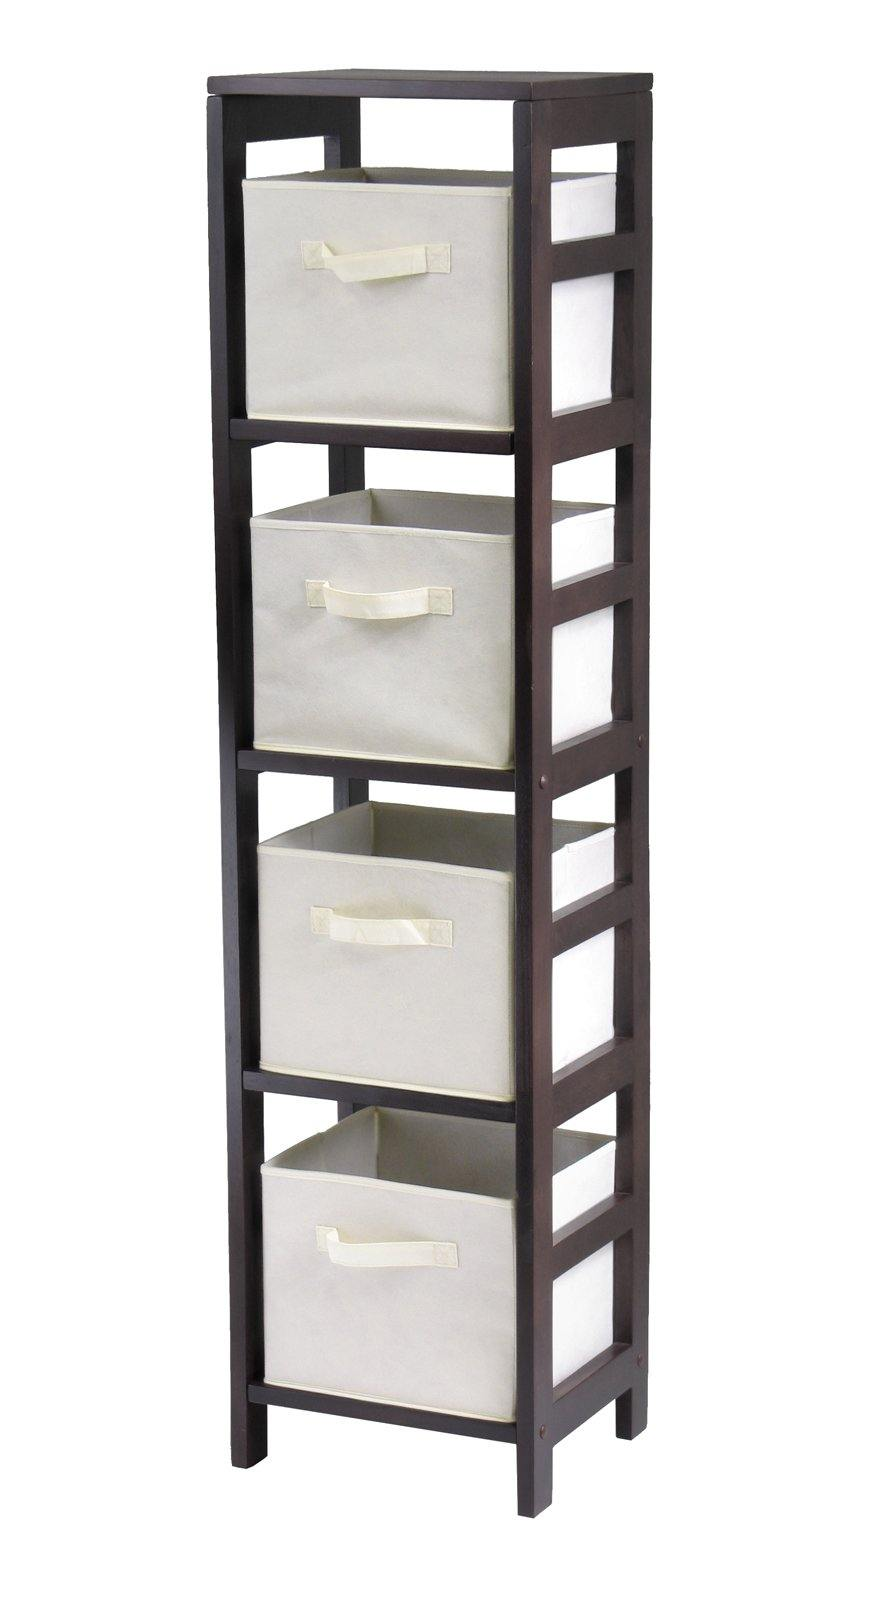 Capri 4-Section N Storage Shelf with 4 Foldable Beige Fabric Baskets - My USA Furniture